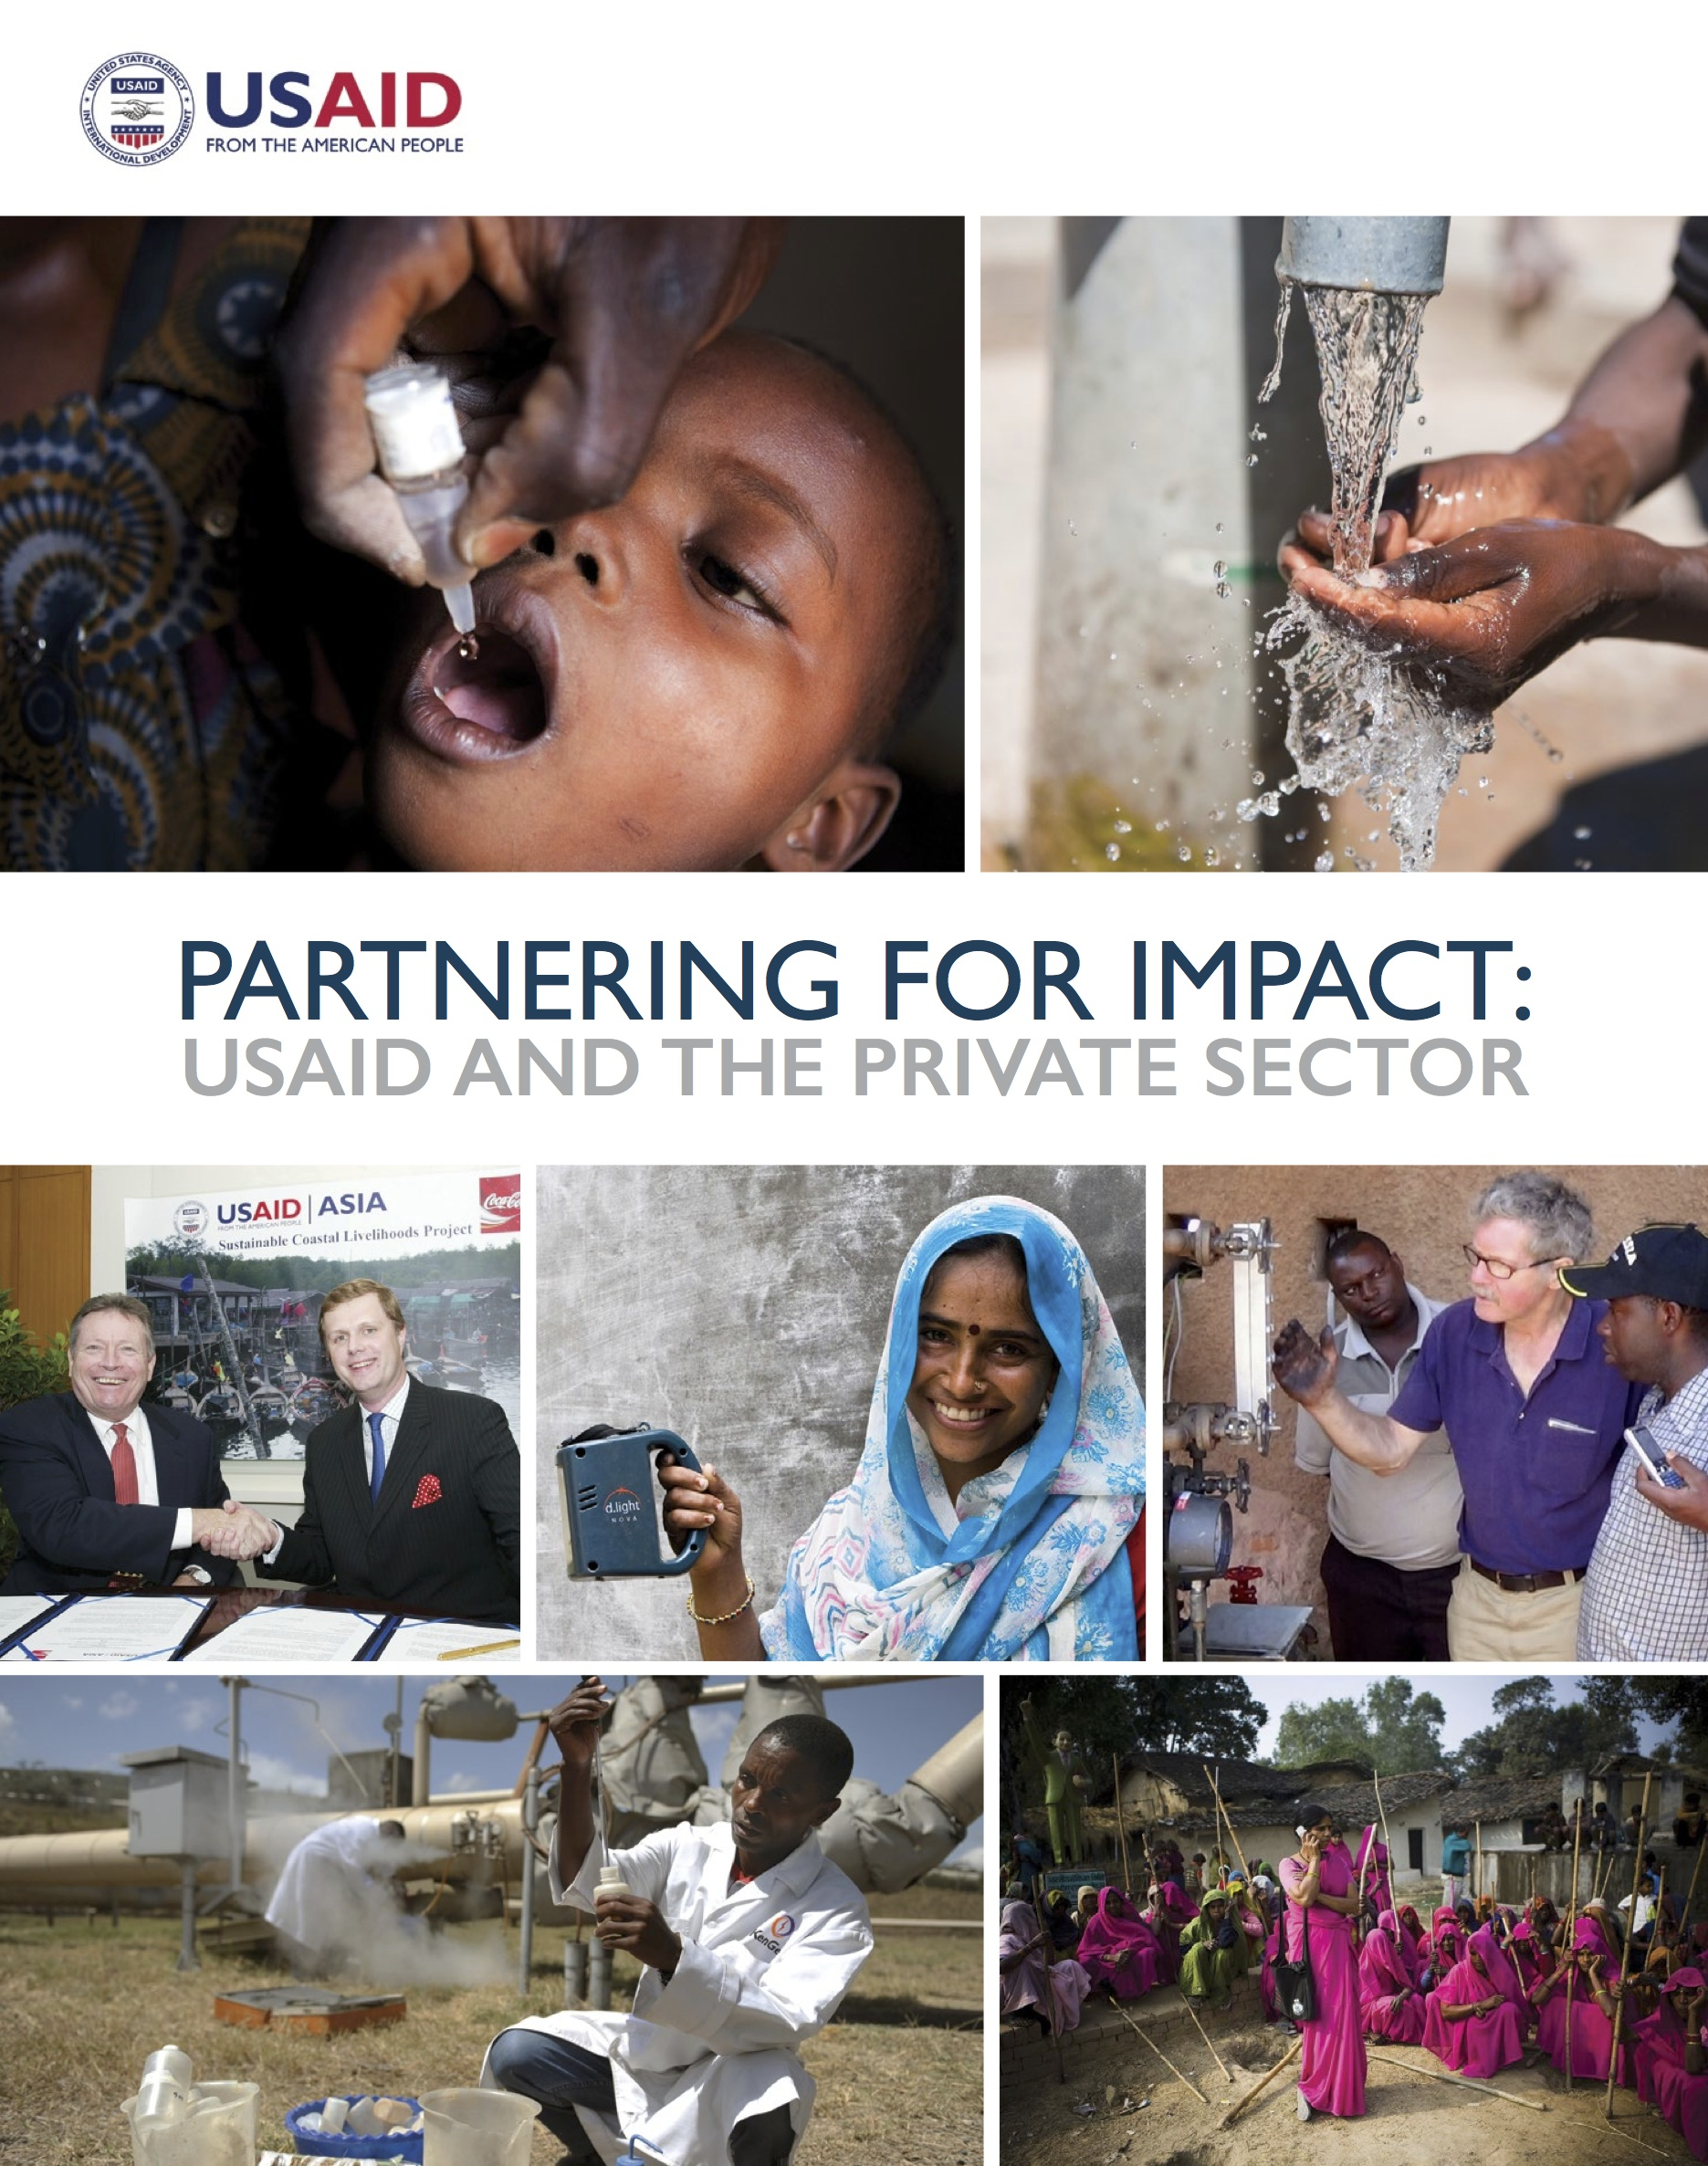 Partnering for Impact: USAID and the Private Sector